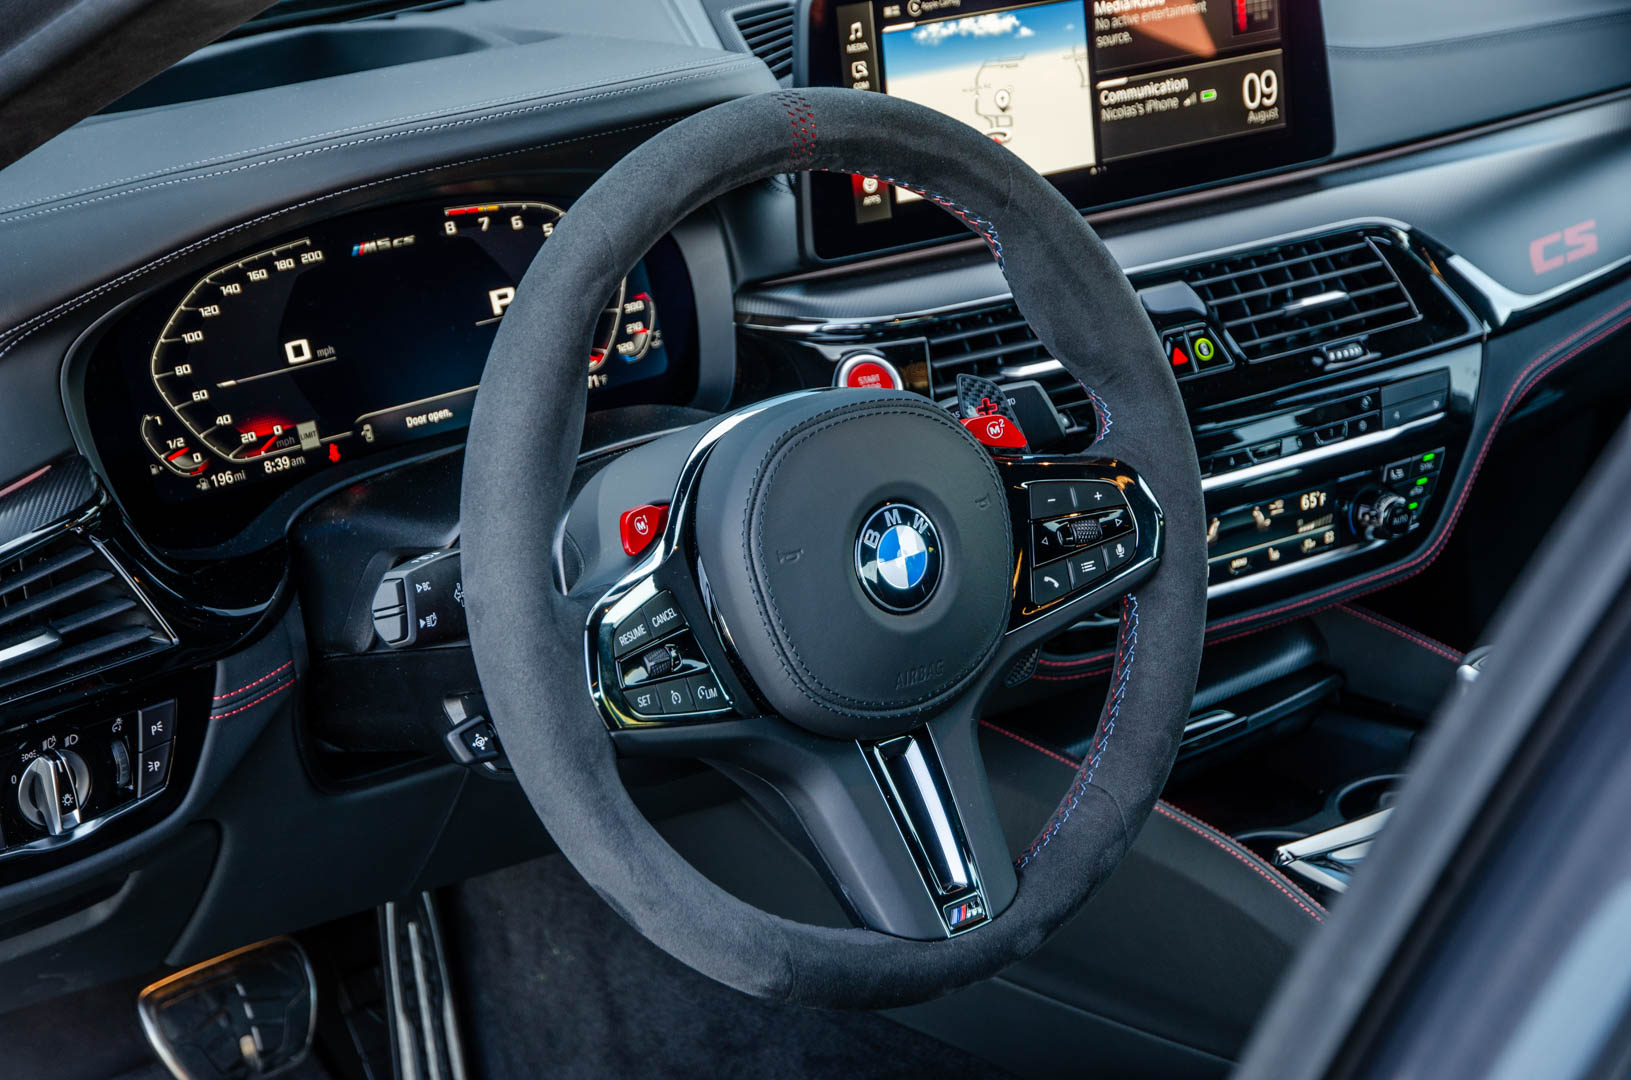 TEST DRIVE: BMW M5 CS — The M5 Goes Out with a Bang